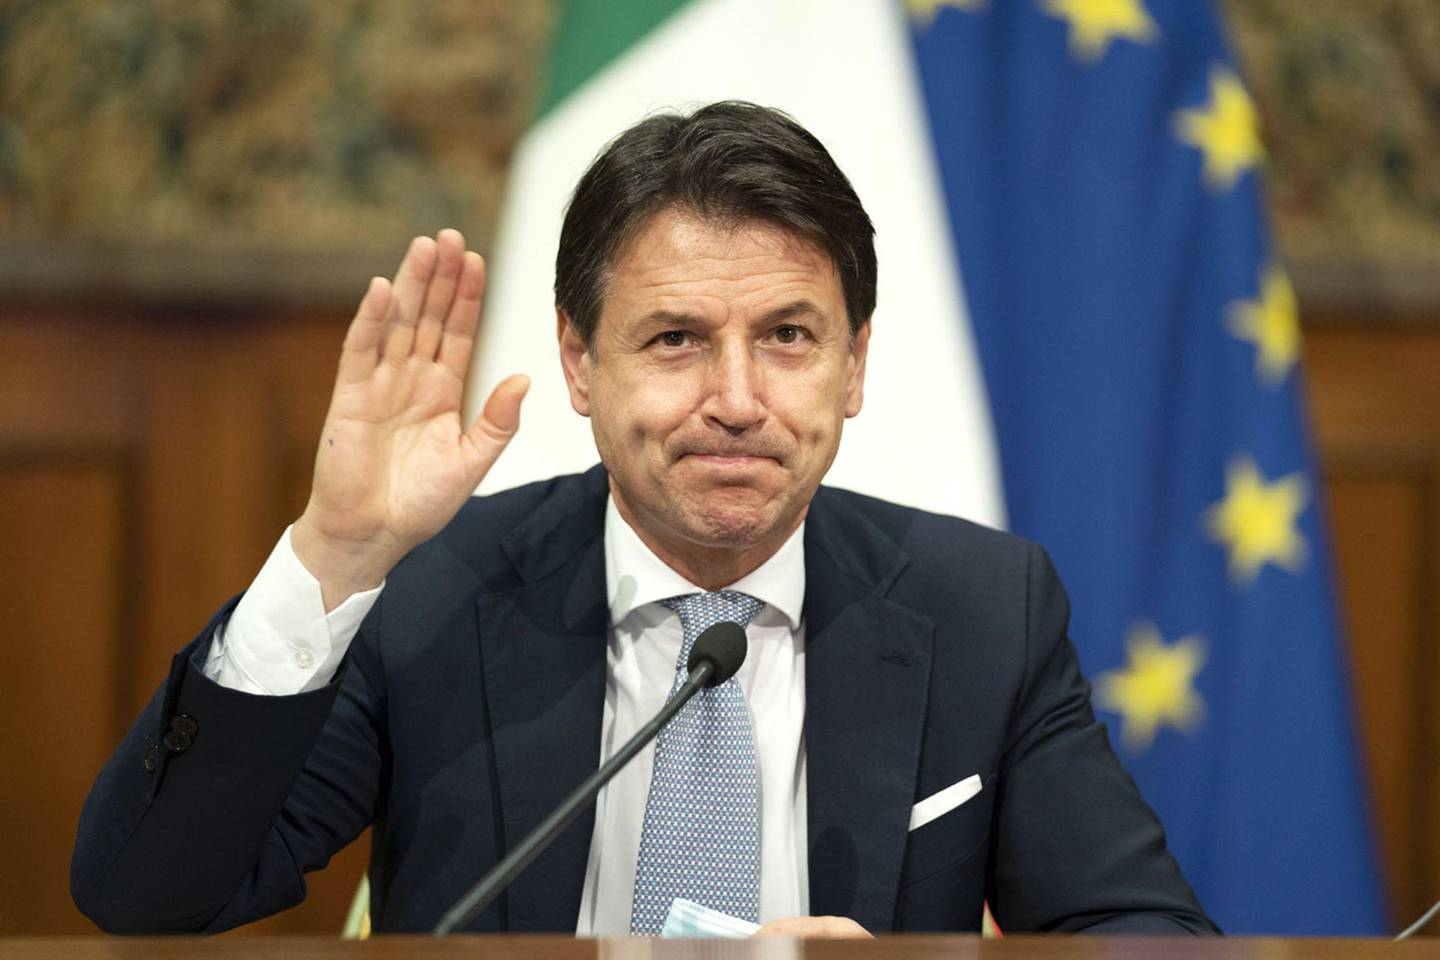 This handout photo taken in Rome on November 19, 2020 and released by the Italian Prime Minister's press office shows Prime Minister Giuseppe Conte during a video conference meeting with members of the European Council on the EU response to the COVID-19 pandemic. (Photo by - / Italys' Prime Minister Press Office / AFP)